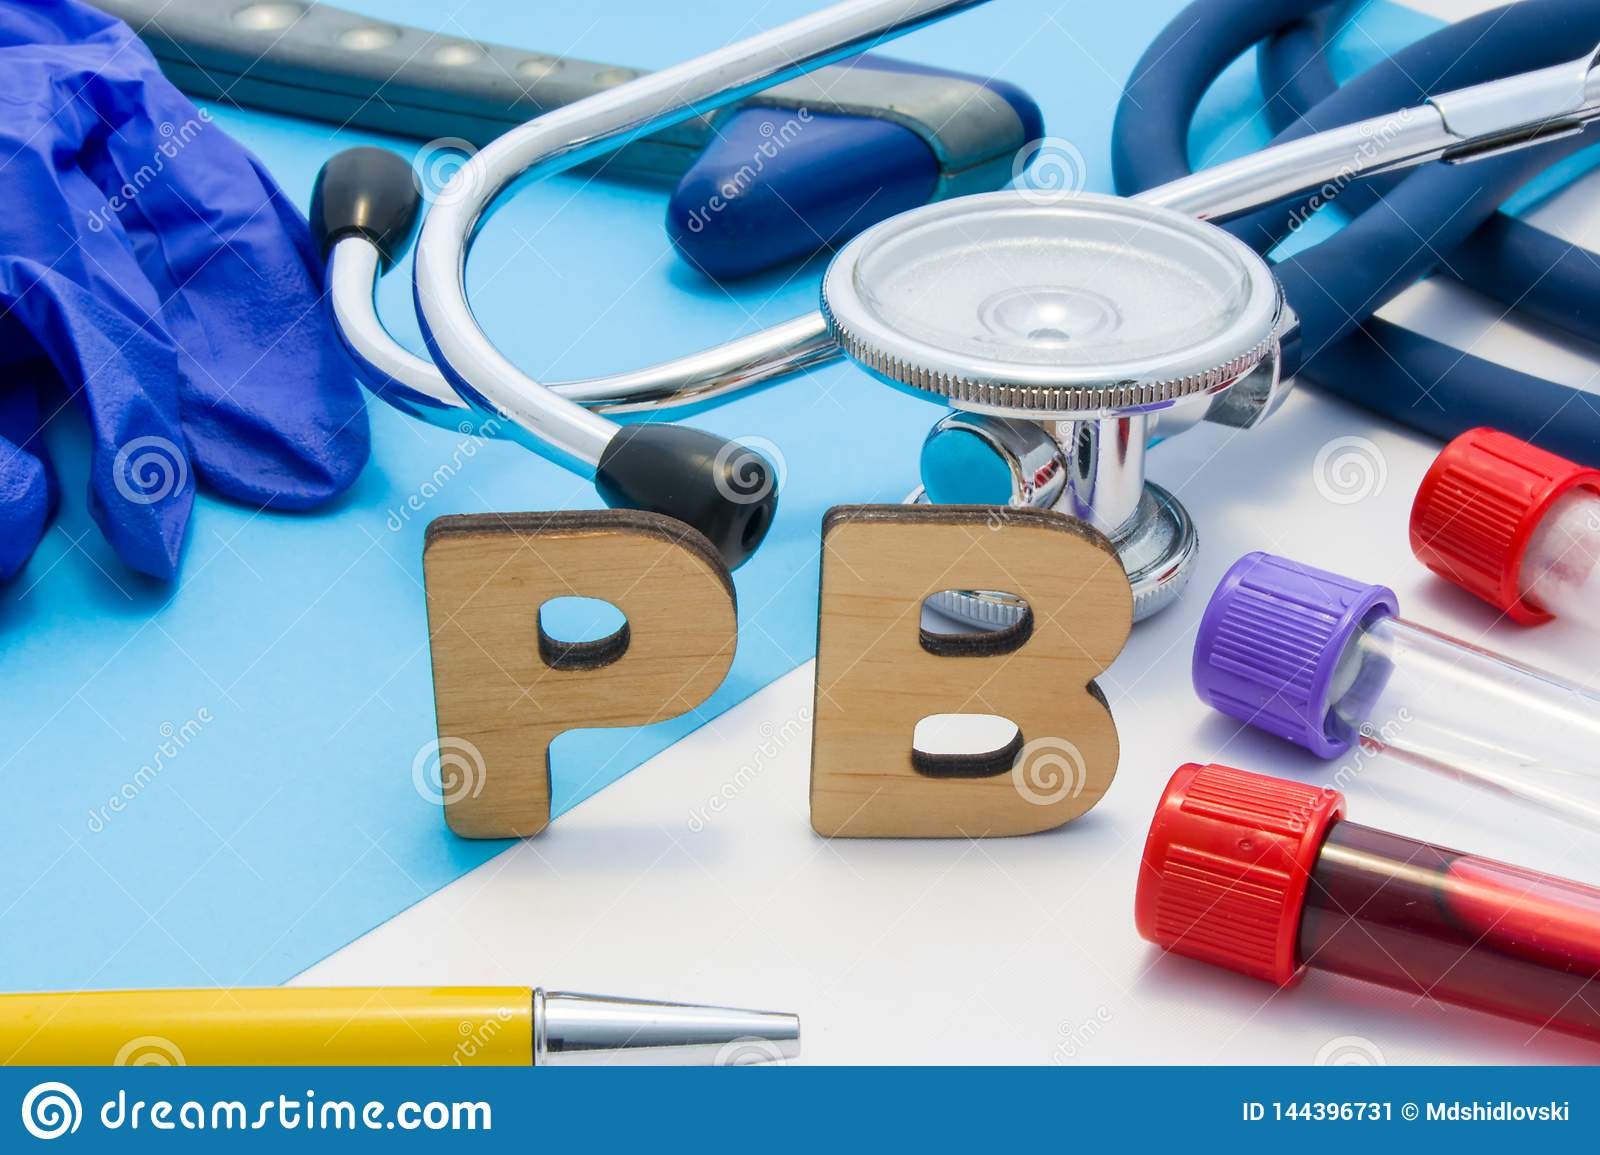 PB Medical Lab Acronym, Meaning Lead Or Plumbum In Human Body